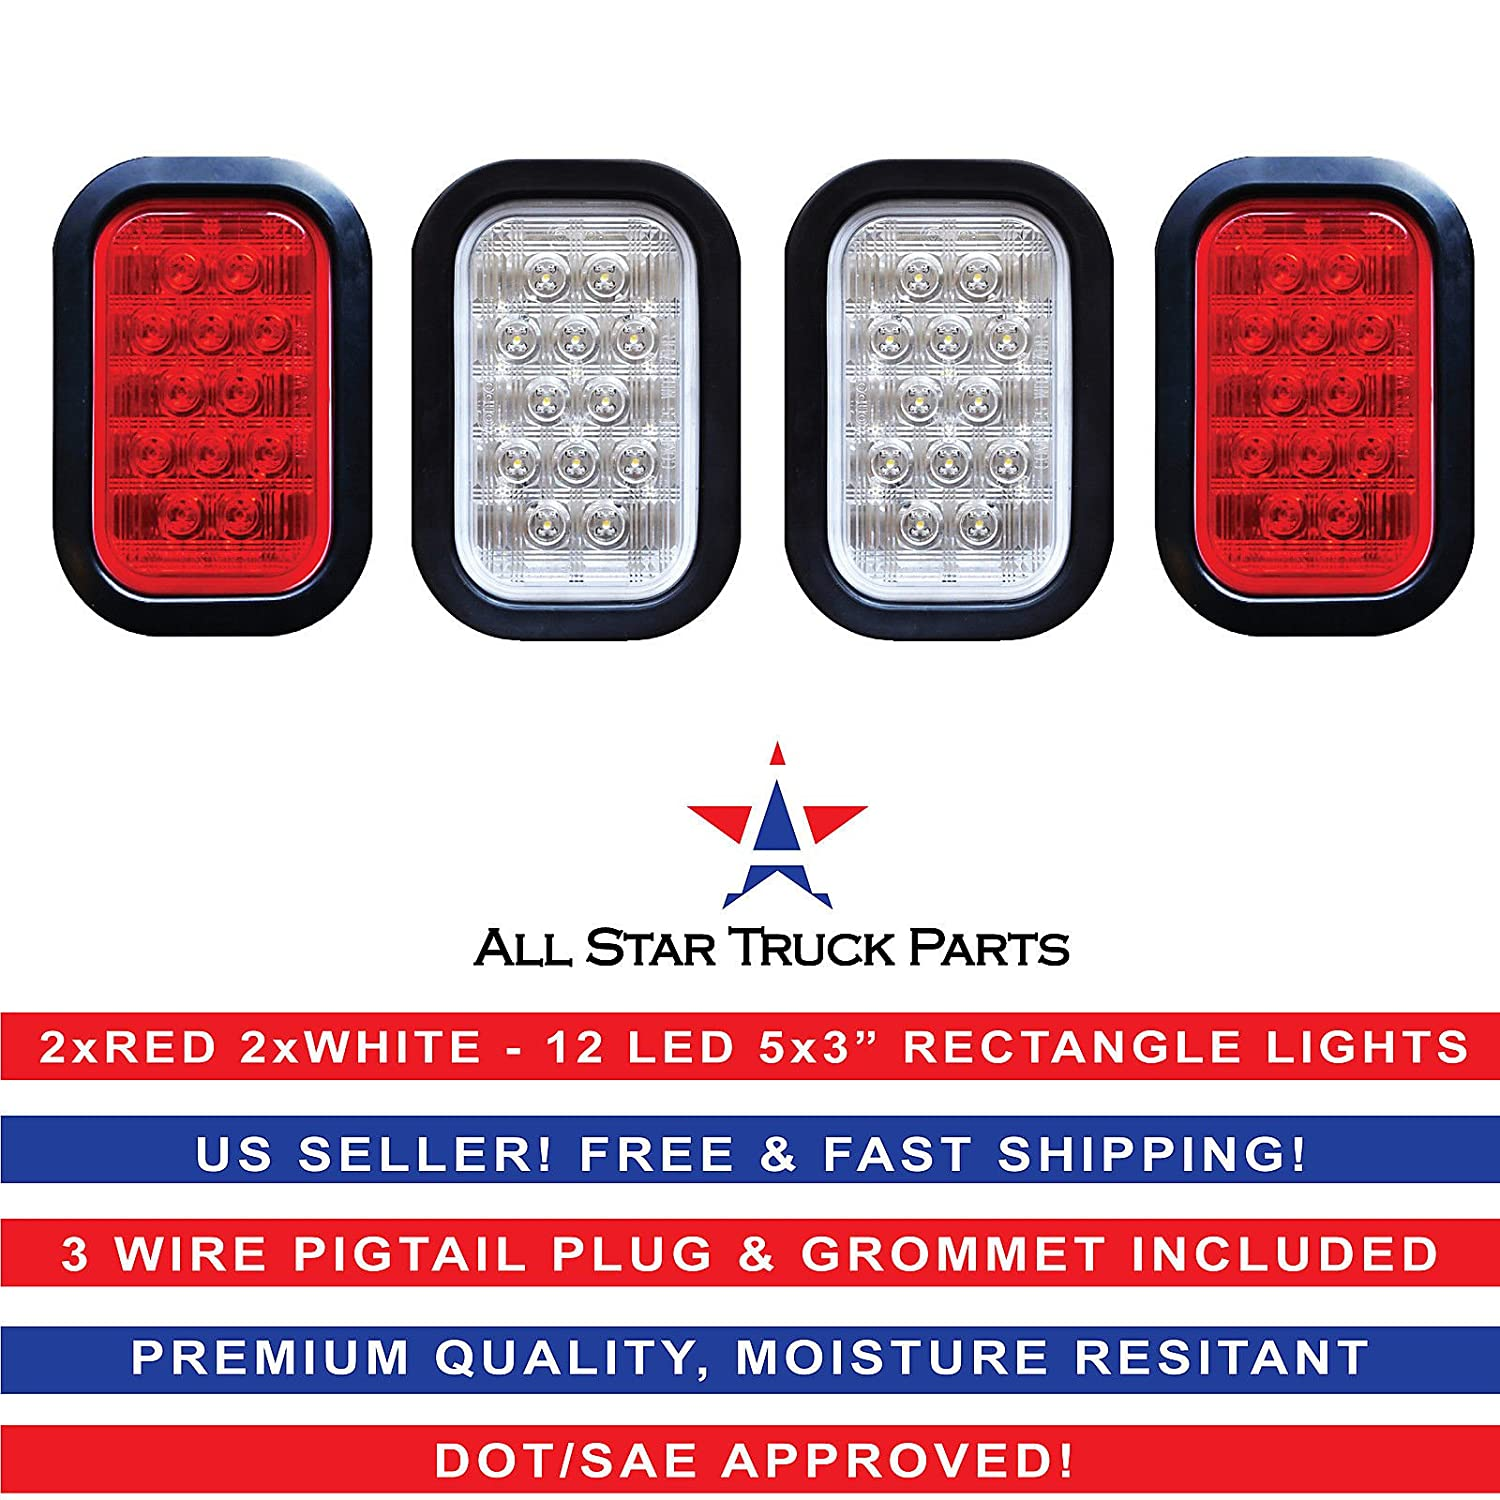 [ALL STAR TRUCK PARTS] 5x3' 2x Red 2xWhite Rectangle 12 LED Stop/Turn/Tail & Backup/Reverse Truck Trailer Hitch Light Grommet Wire Kit